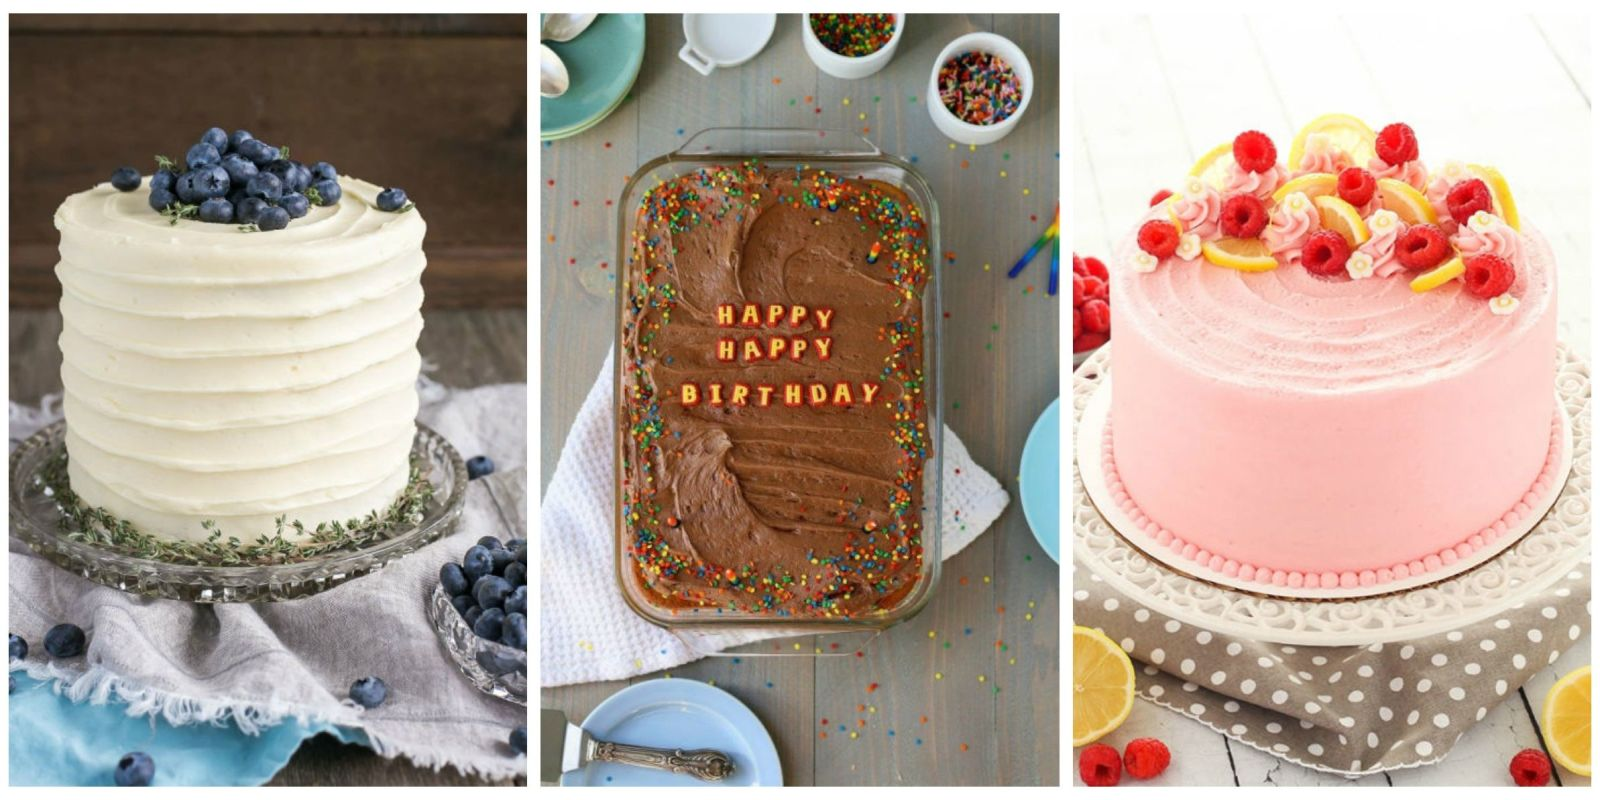 Cake Decorating Homemade : 22 Homemade Birthday Cake Ideas - Easy Recipes for ...